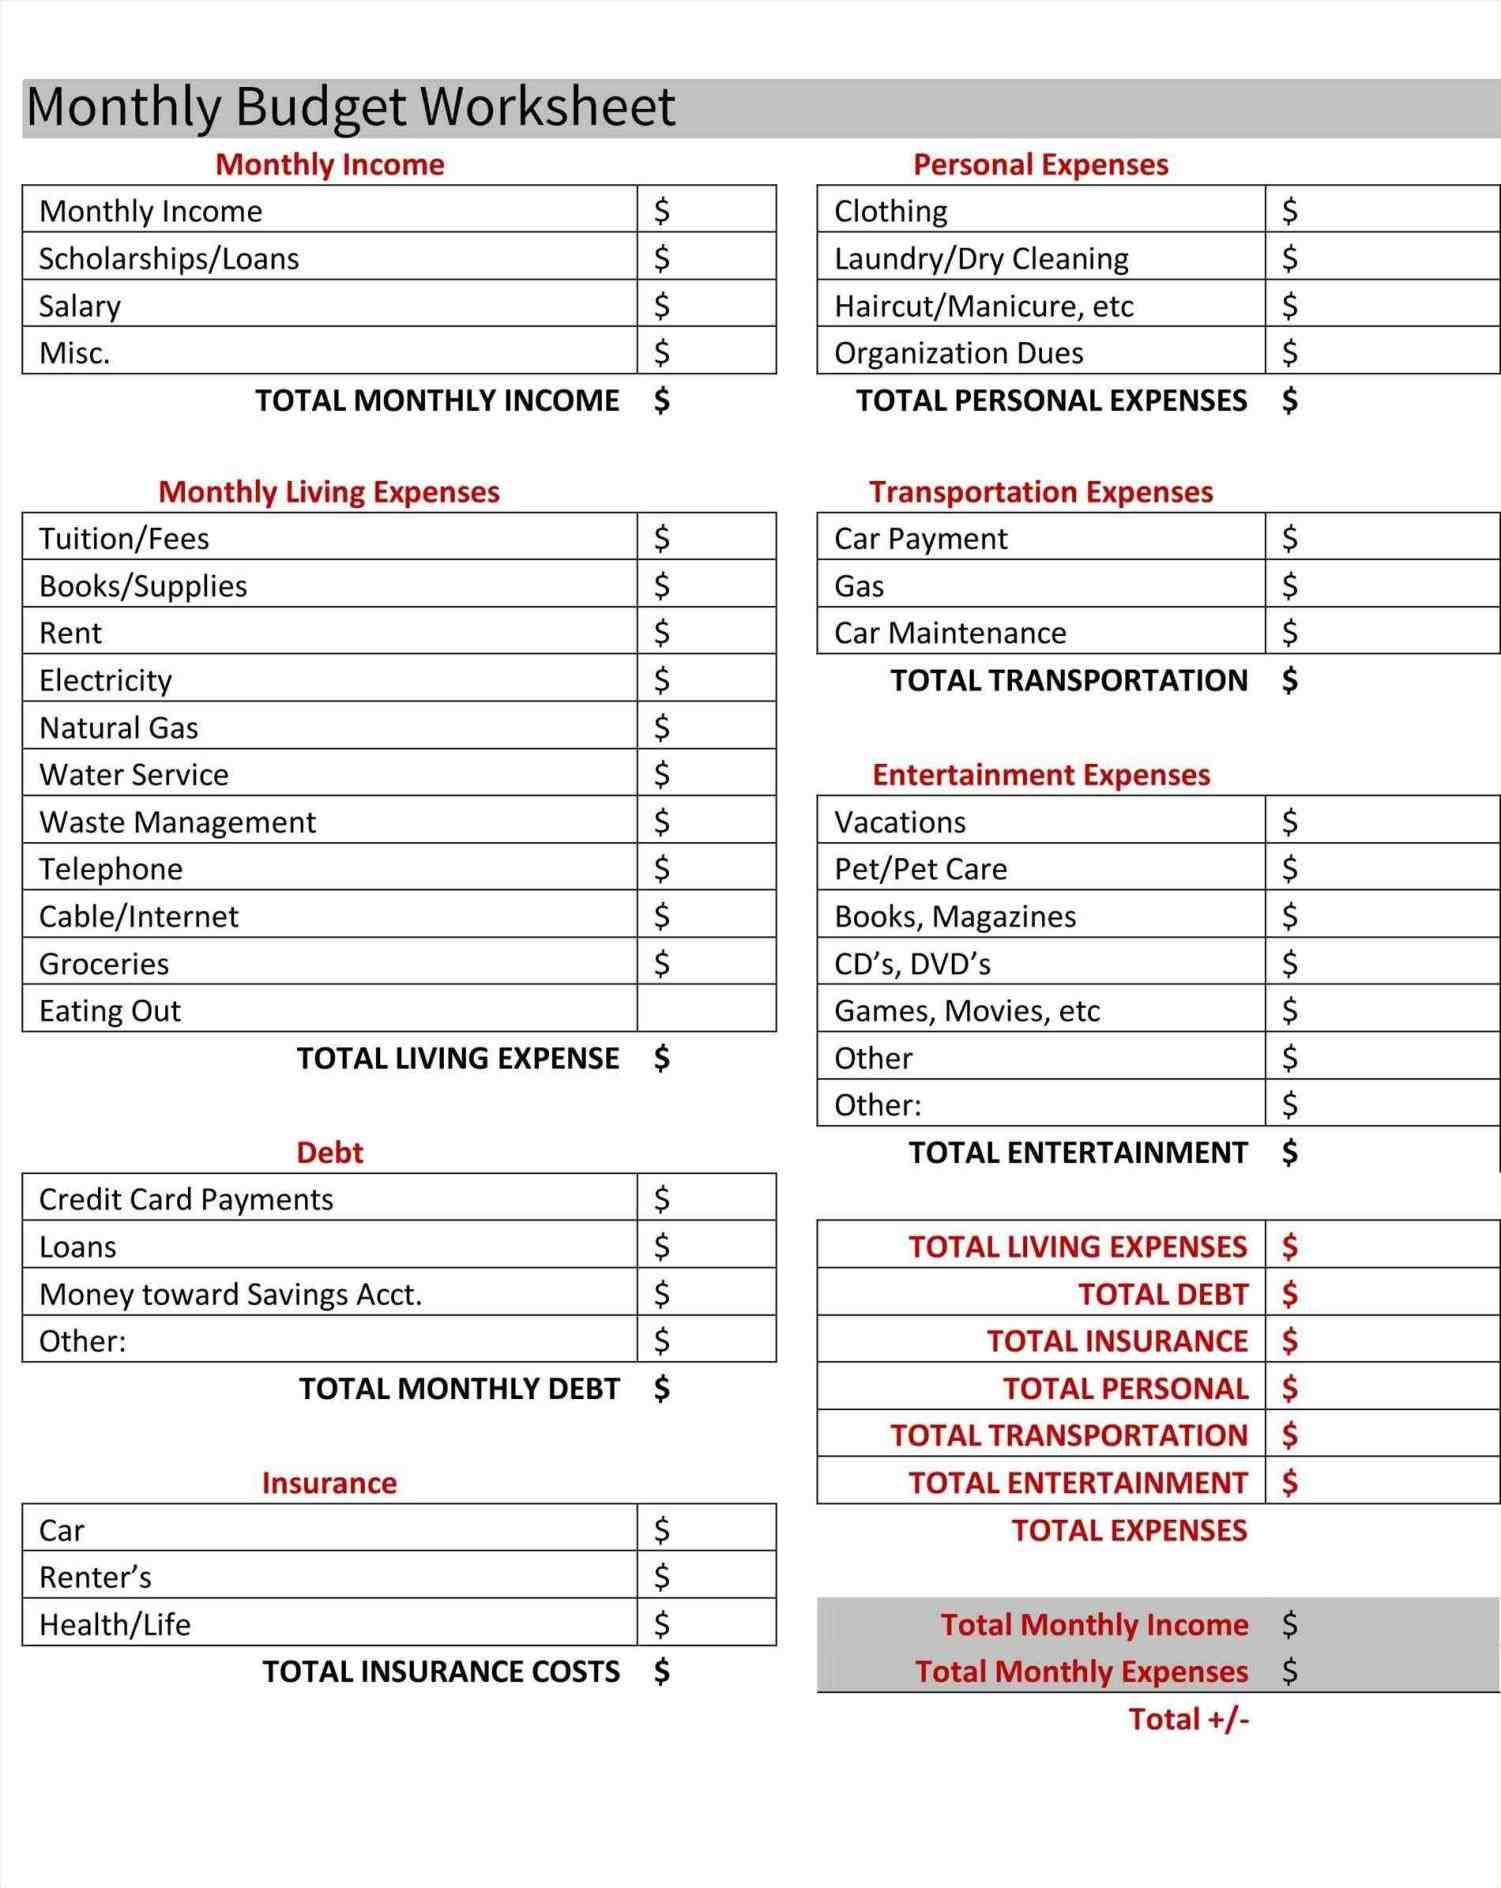 family expense calculator worksheet budget planner expenses tracker template expenses Family Monthly Expense Calculator Worksheet tracker template budgeting calculator commonpenceco